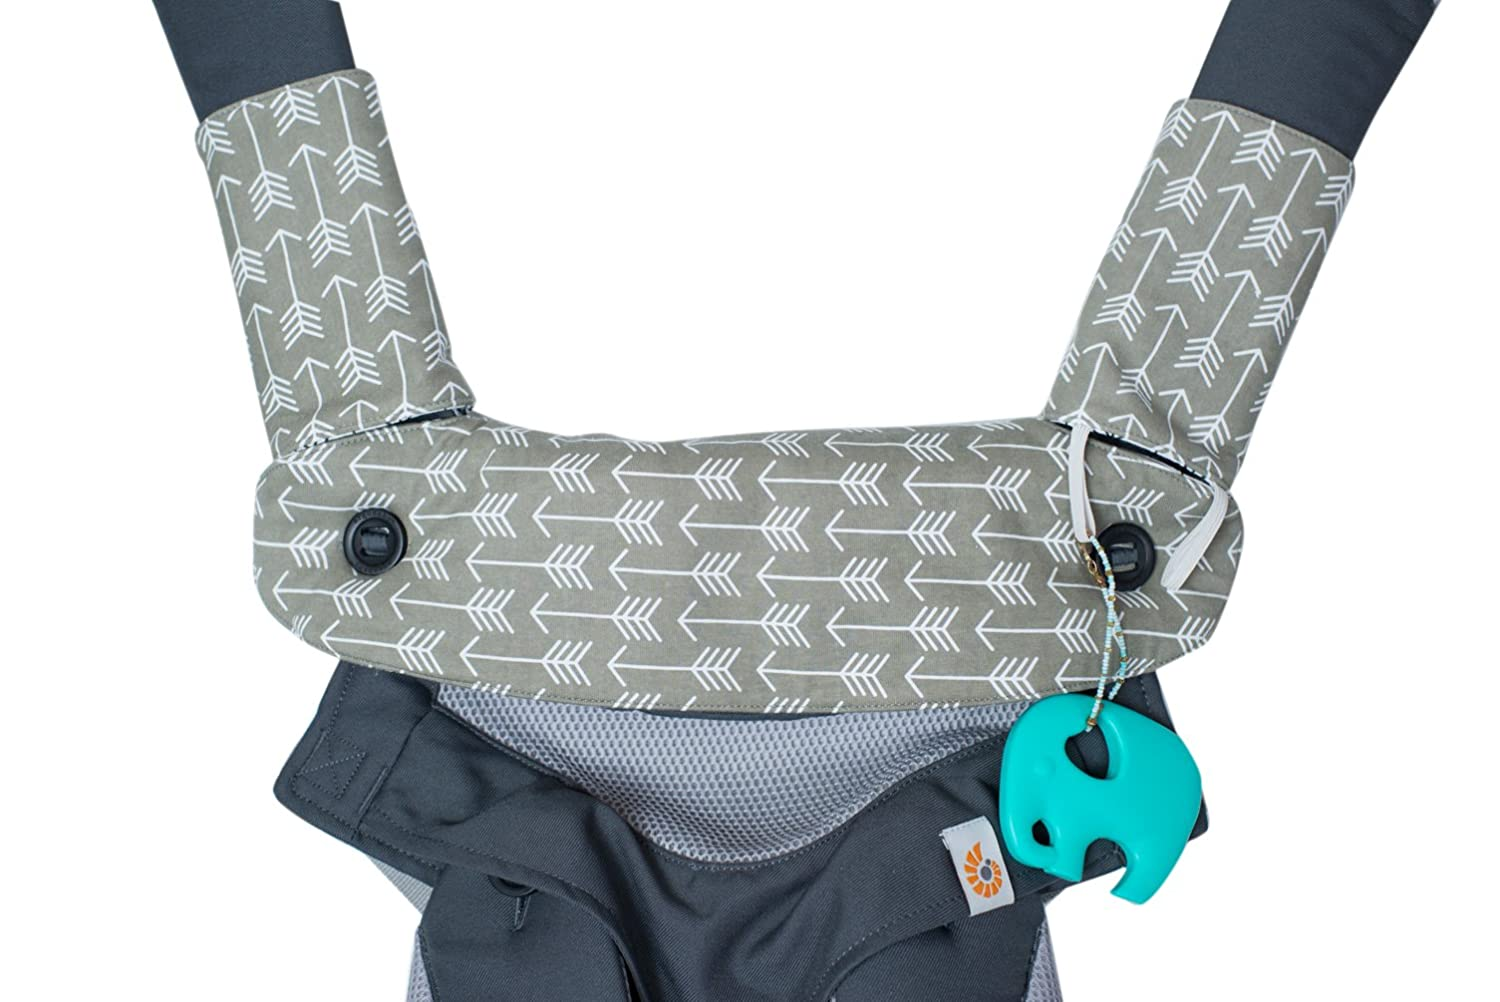 Premium 2 Packs Drool and Teething Reversible Cotton Pad - Fits Ergobaby Four Position 360 and Most Baby Carrier - Gray Arrow Cross Design - Hypoallergenic by Mila Millie